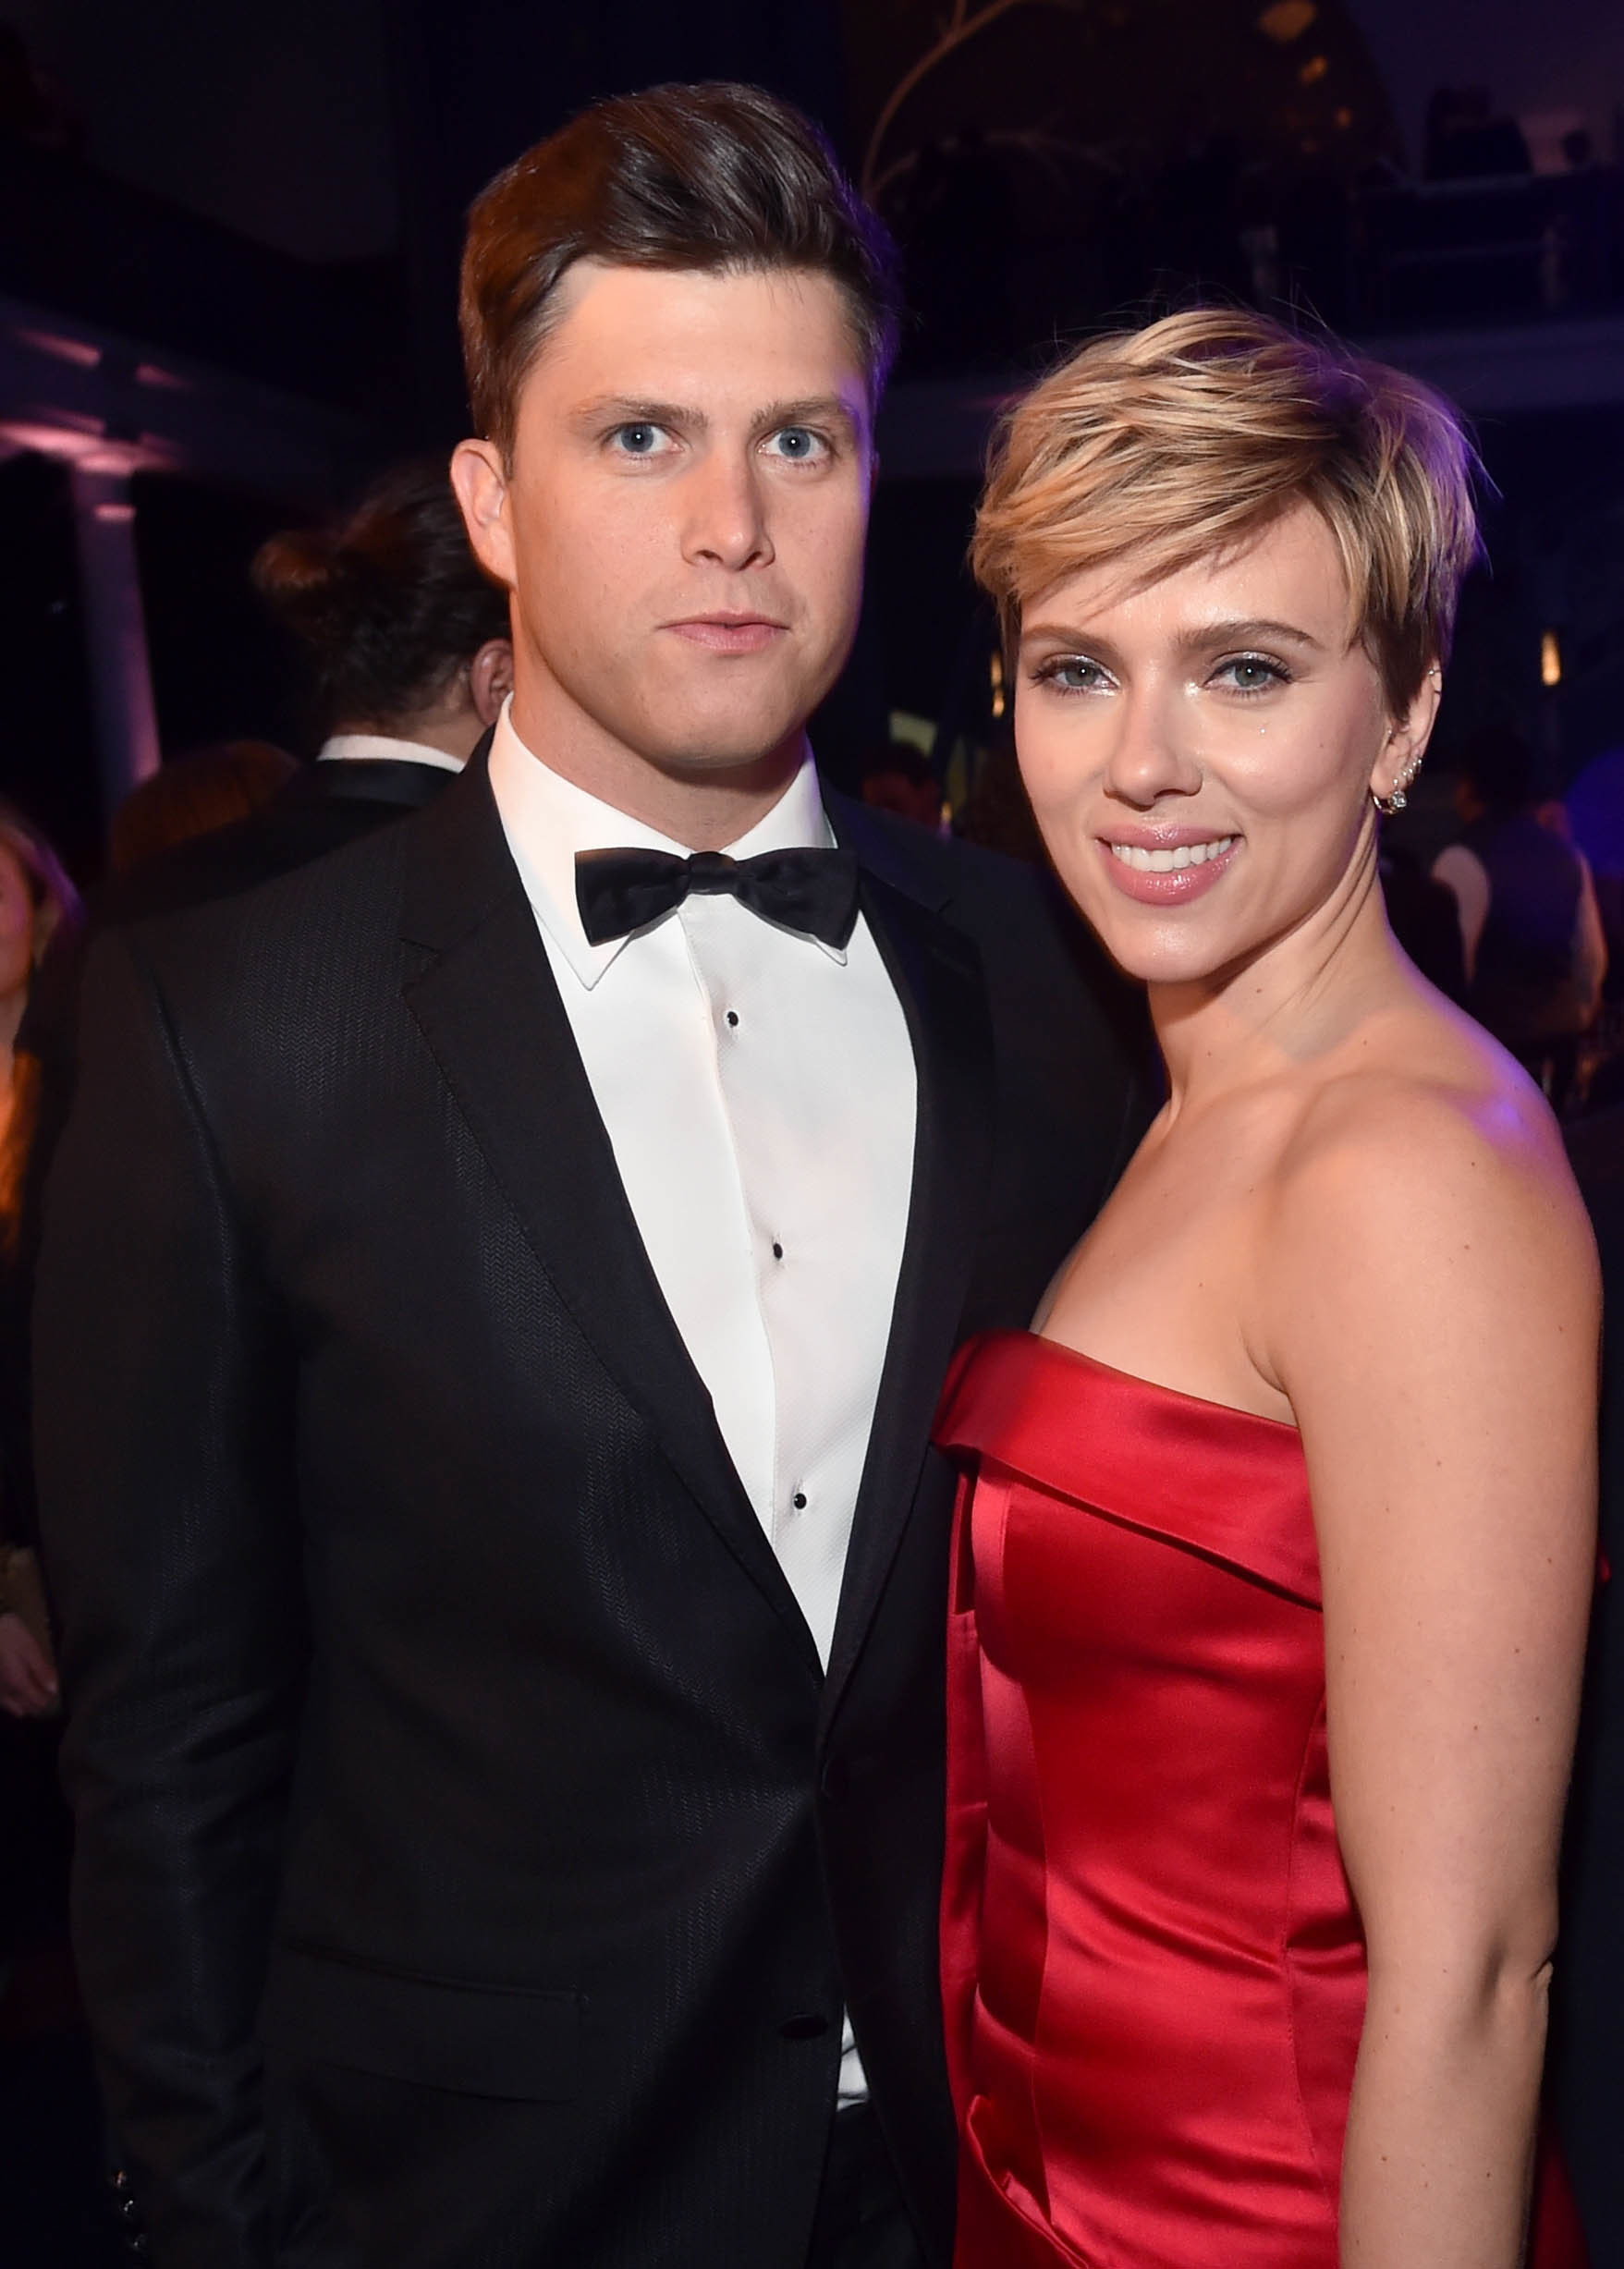 Colin Jost and Scarlett Johansson attend the American Museum of Natural History Gala in New York City on Nov. 30, 2017.